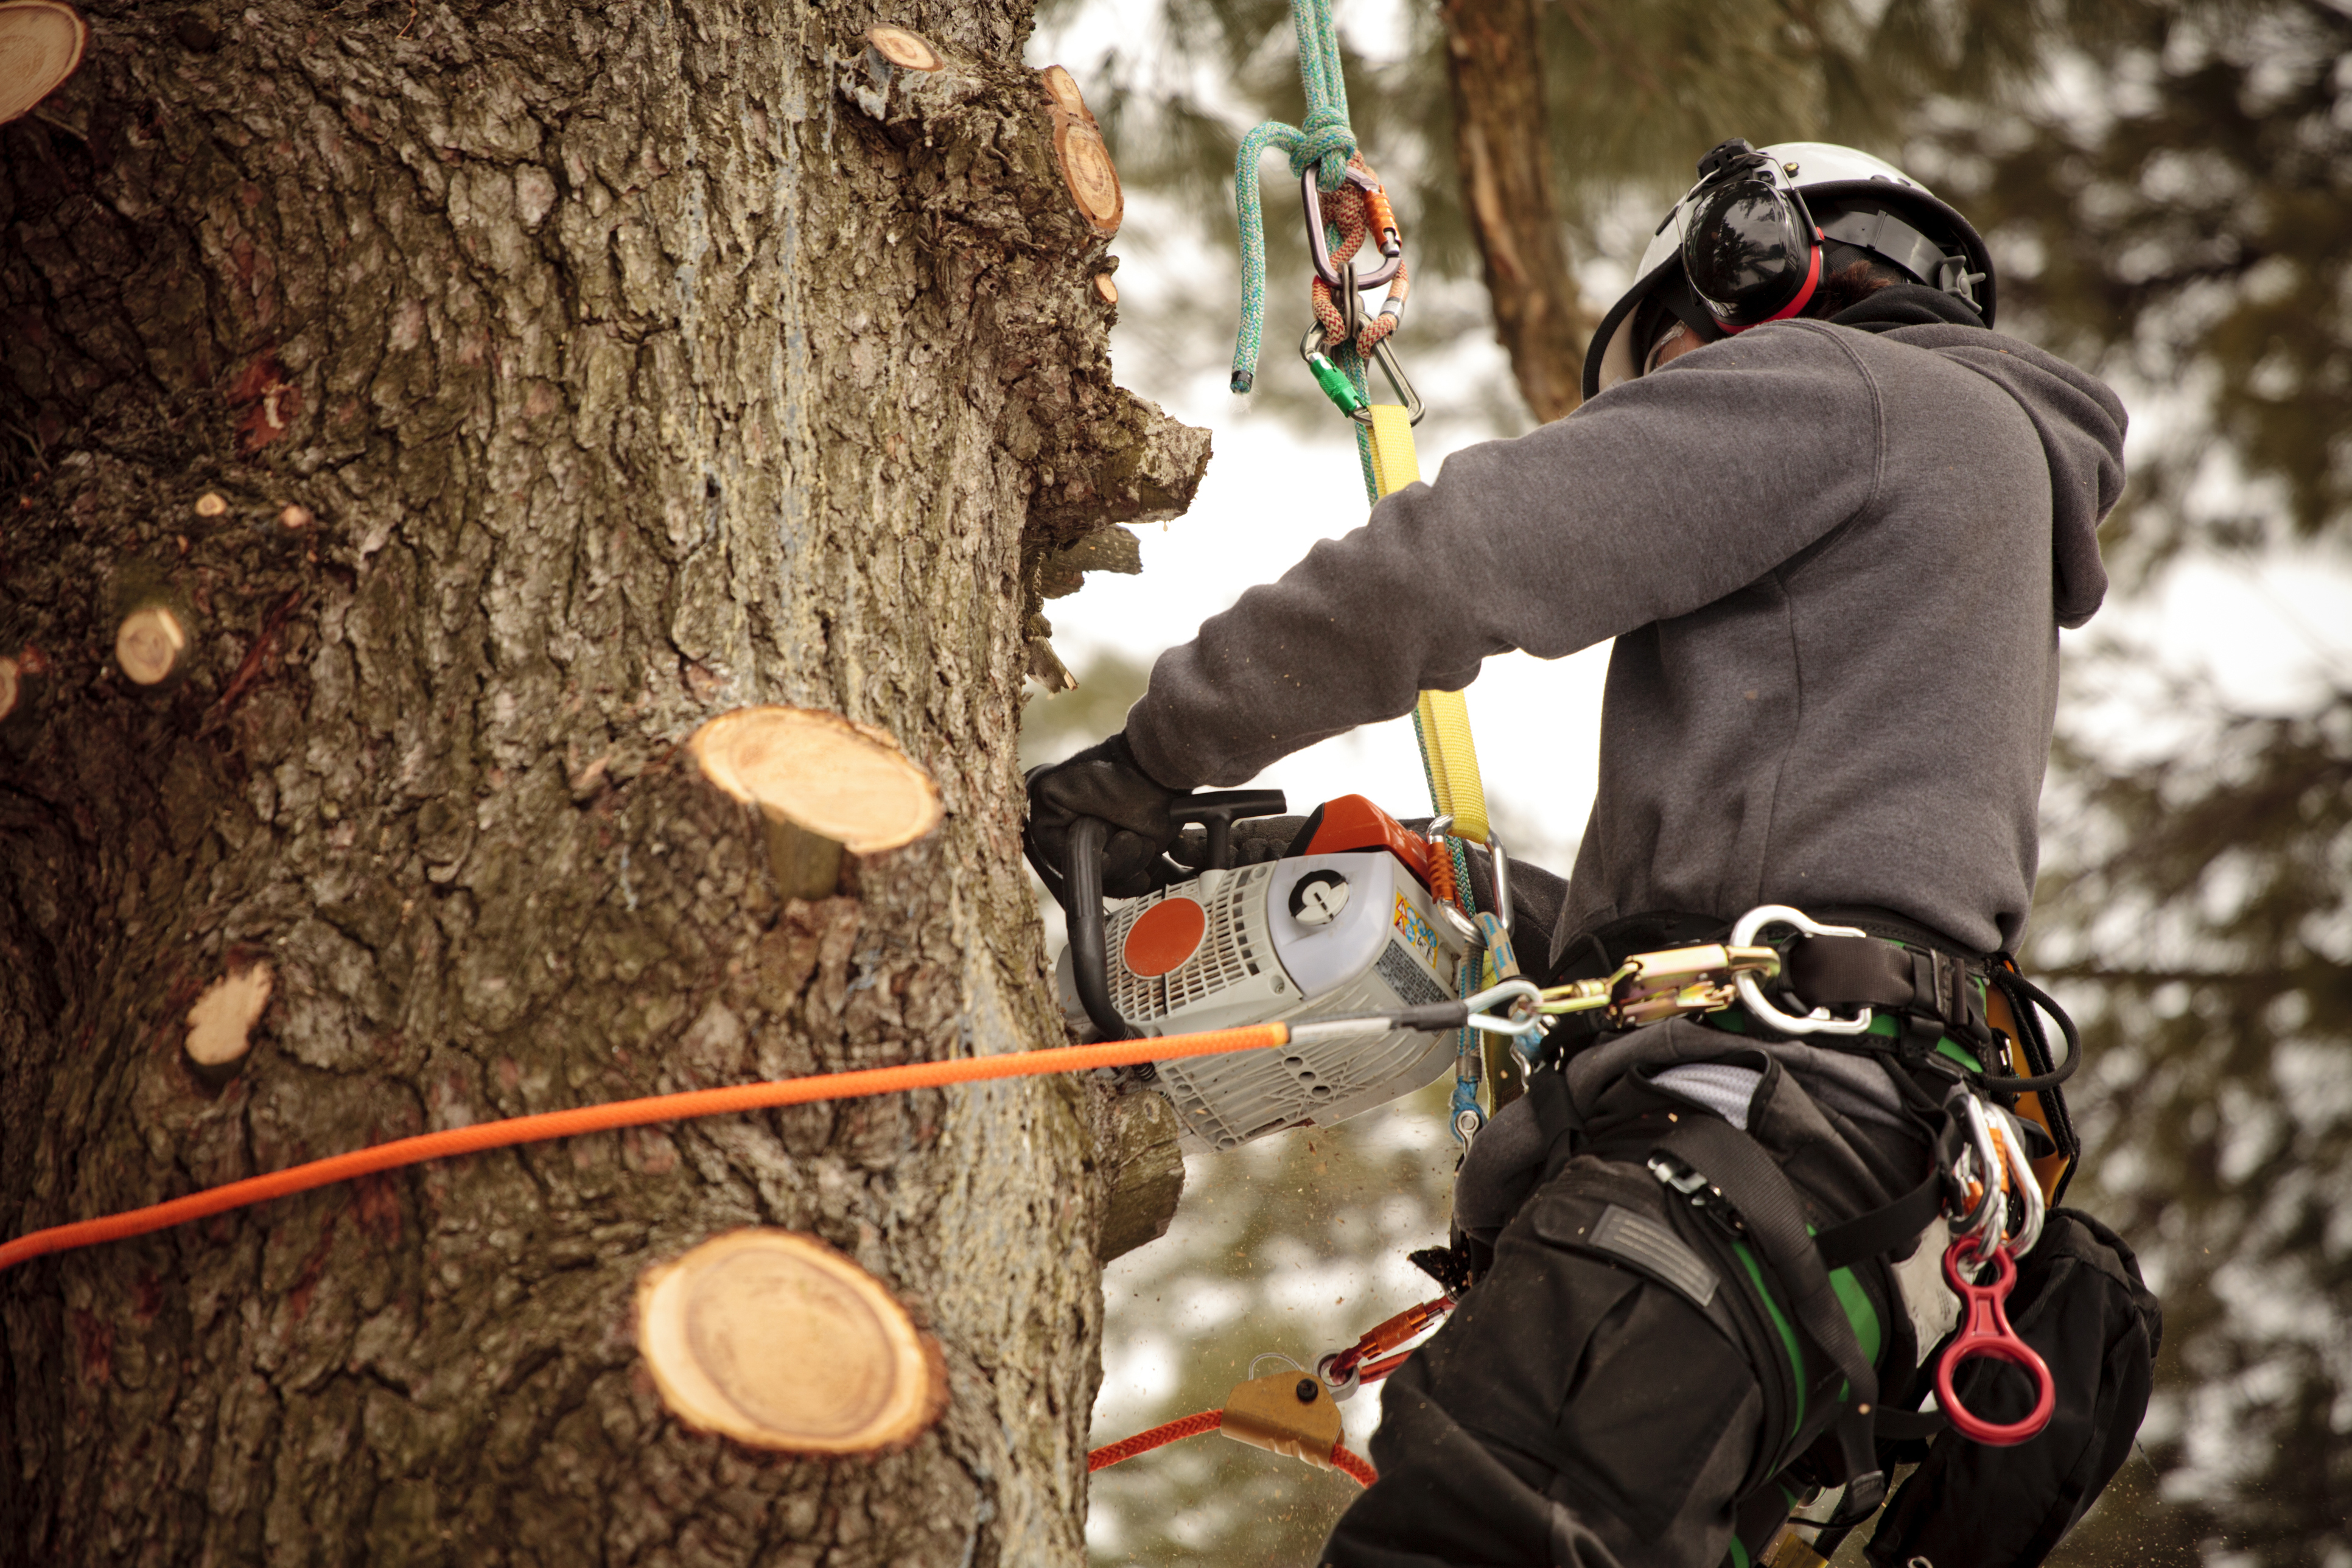 Pruning a large tree